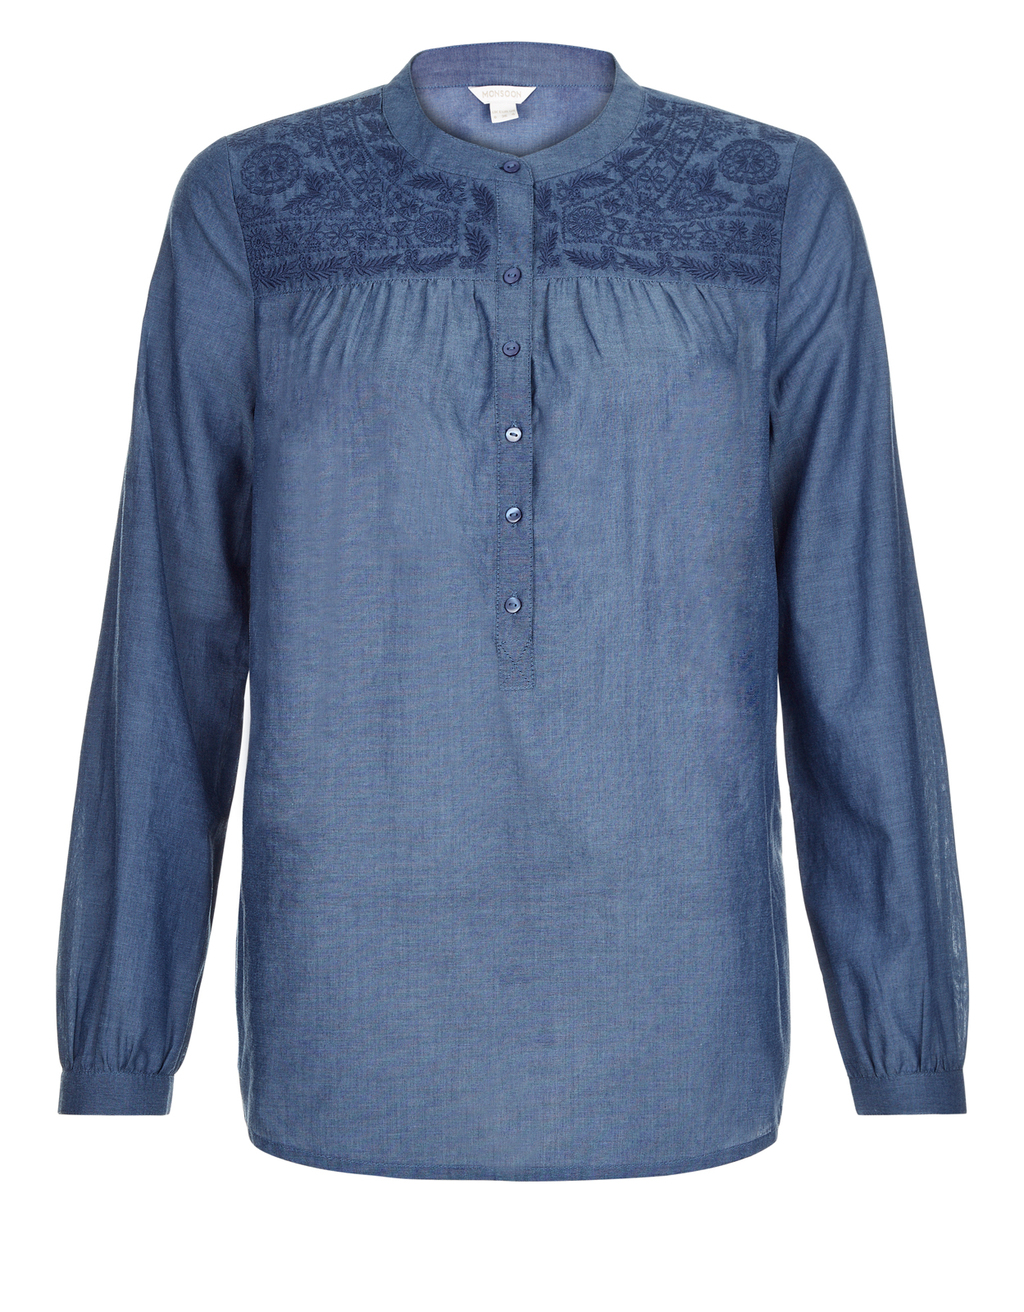 Emma Chambray Shirt - pattern: plain; style: shirt; predominant colour: denim; occasions: casual; length: standard; neckline: collarstand; fibres: cotton - mix; fit: body skimming; sleeve length: long sleeve; sleeve style: standard; texture group: denim; pattern type: fabric; season: s/s 2016; wardrobe: basic